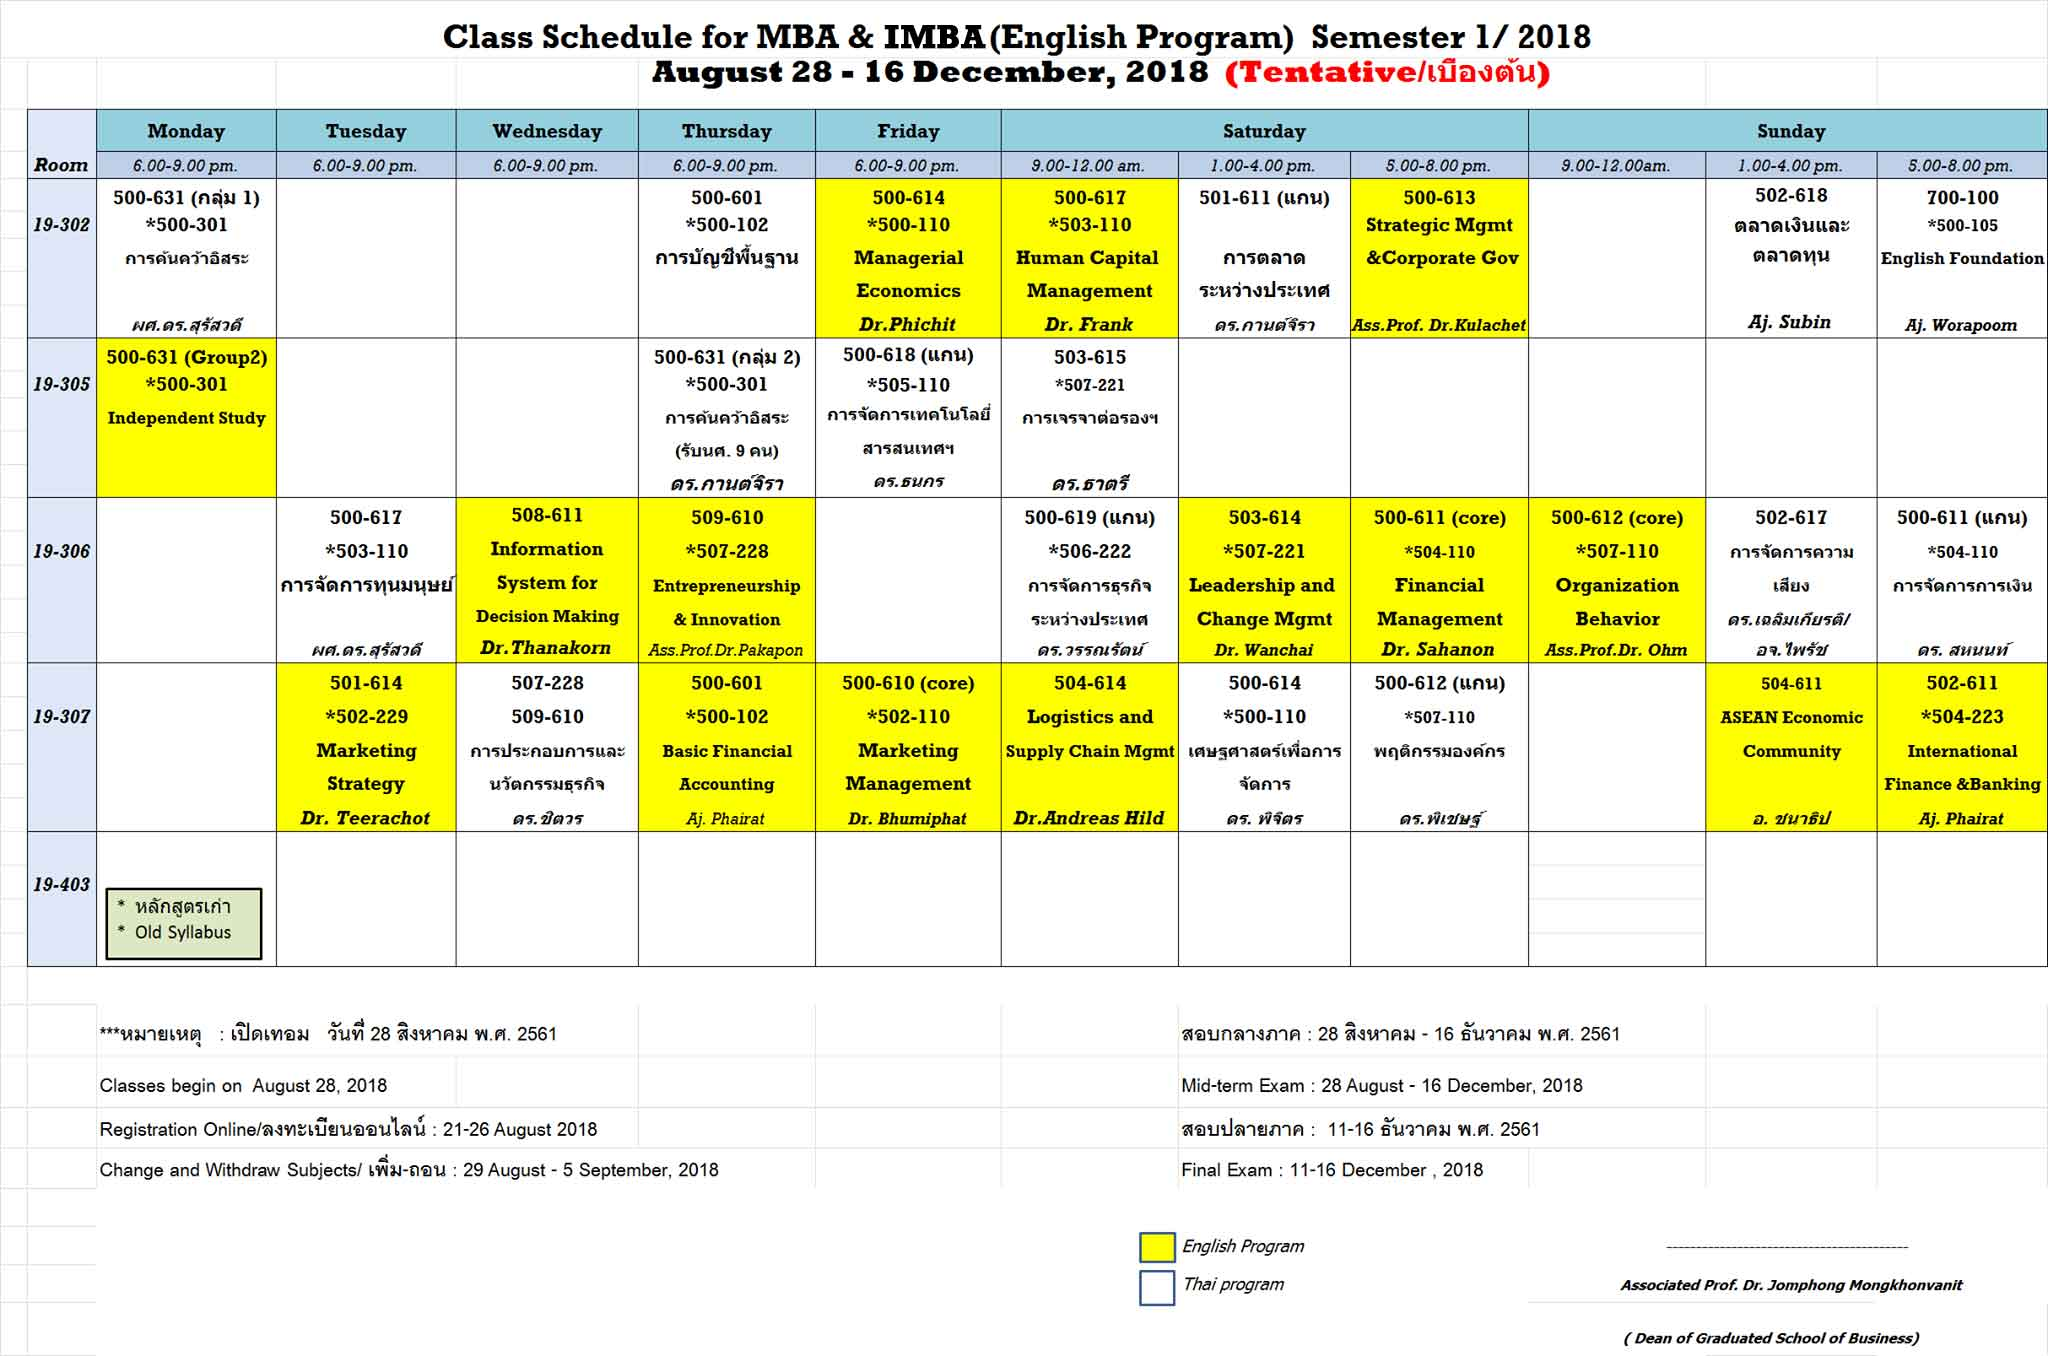 Class-schedule-for-MBA-IMBA-presemester-28Aug-16Dec-2018